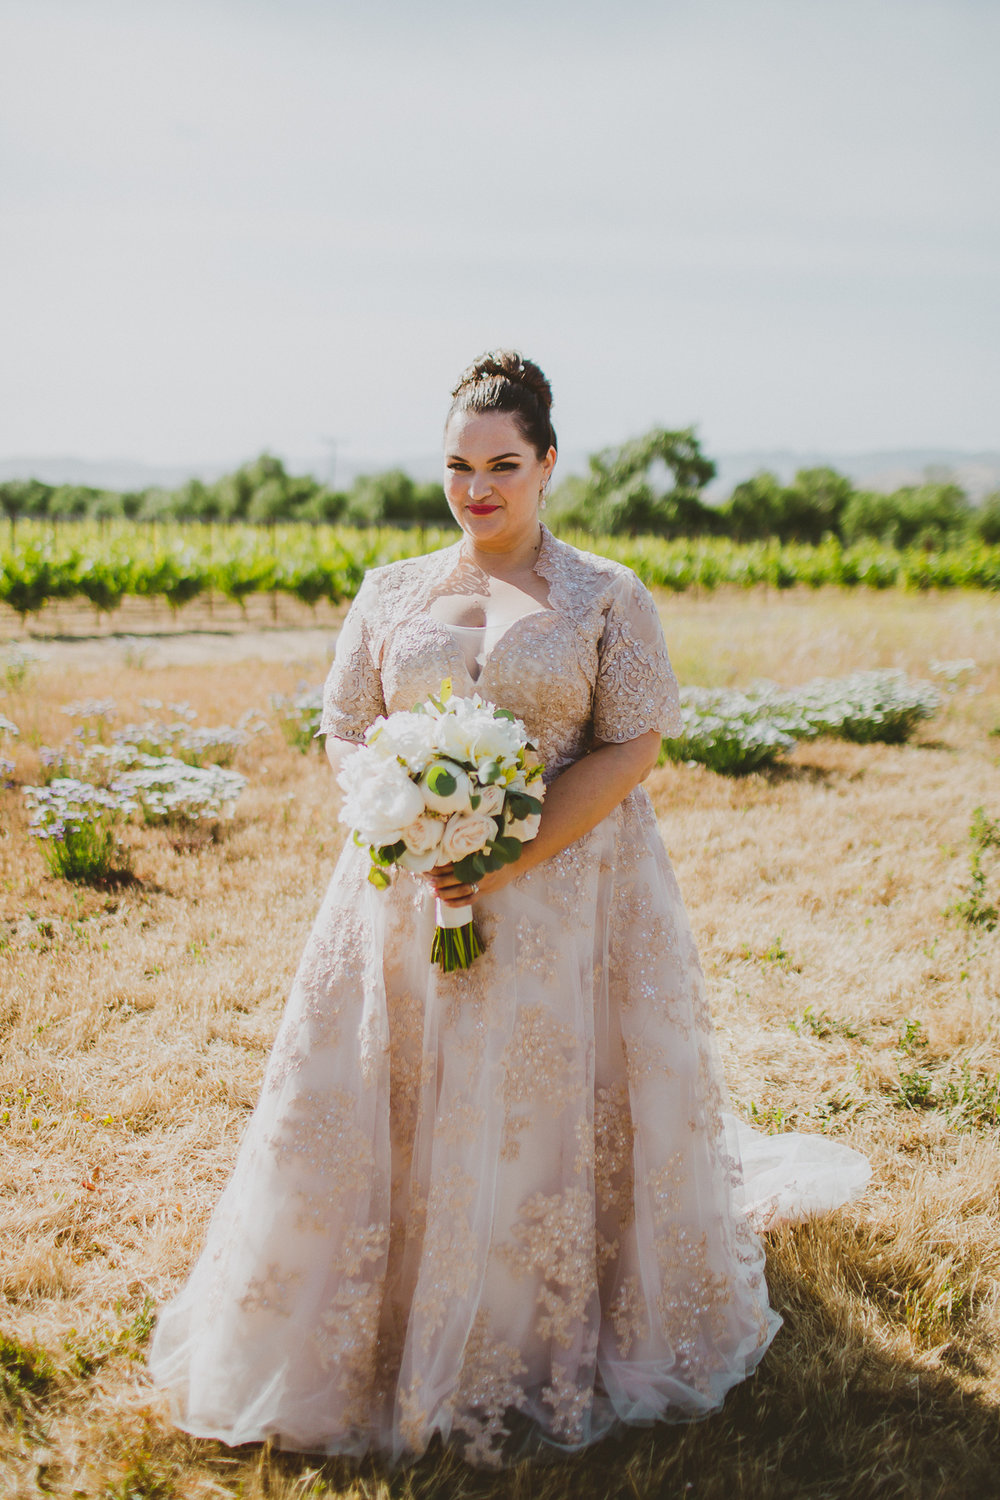 lydia-matt-lavender-oak-vineyard-kelley-raye-los-angeles-wedding-photographer-27.jpg